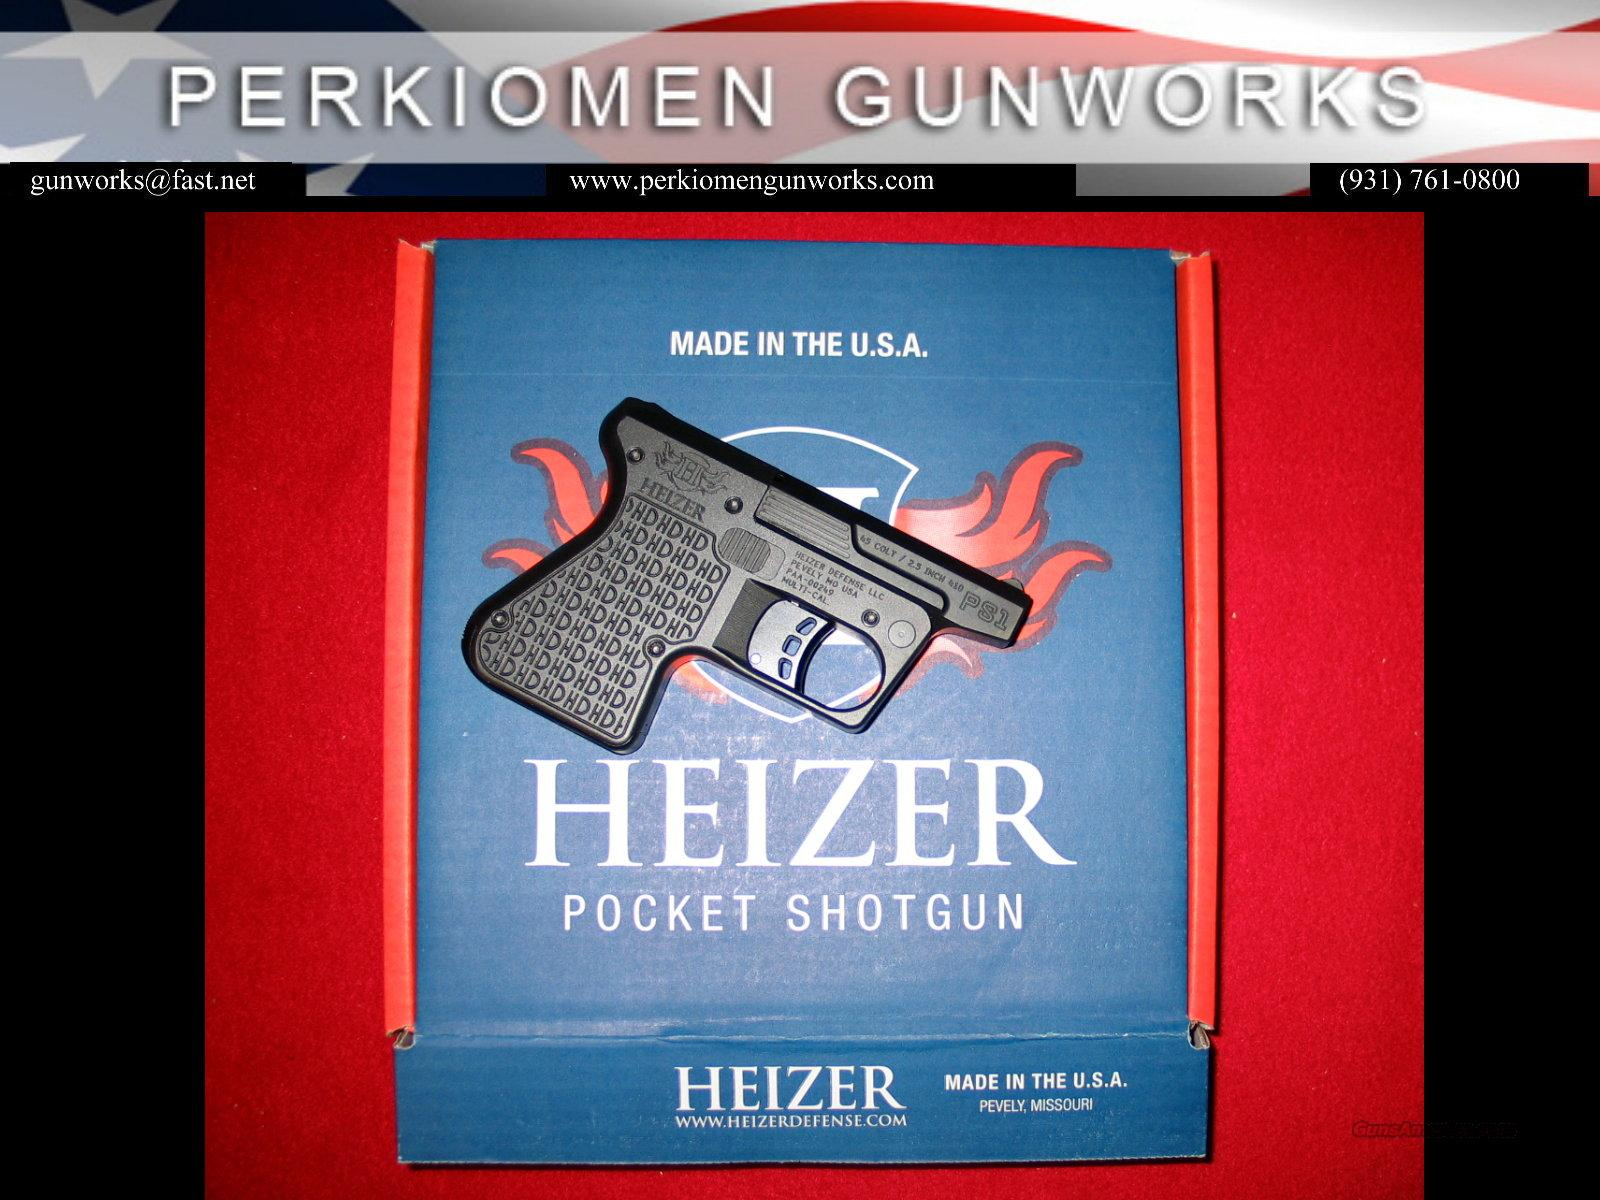 Heizer Defense PS1 Pocket Shotgun .410ga/.45LC, New in Box  Guns > Shotguns > H Misc Shotguns